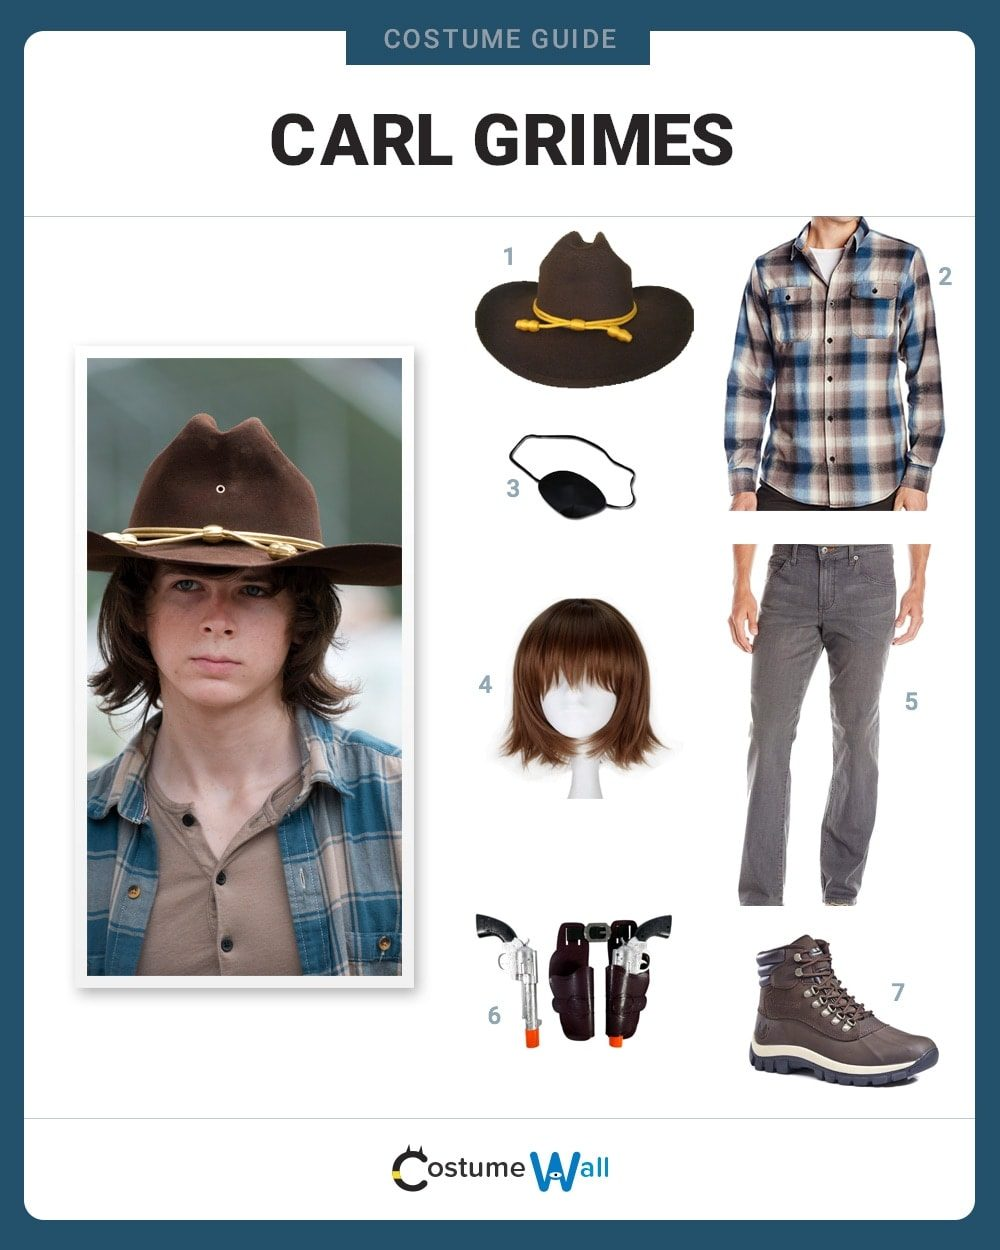 Costume Breakdown  sc 1 st  Costume Wall & Dress like Carl Grimes Costume | Halloween and Cosplay Guides